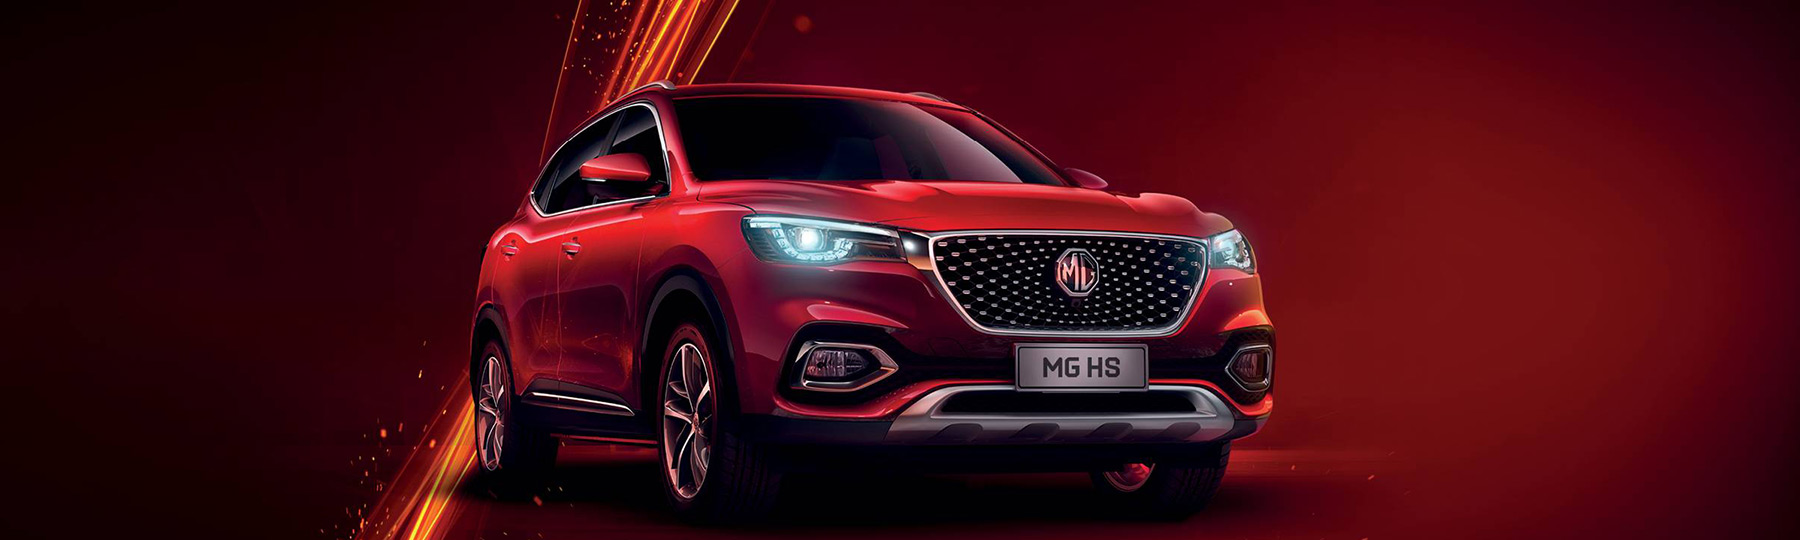 New MG HS Excite - Business Contract Hire